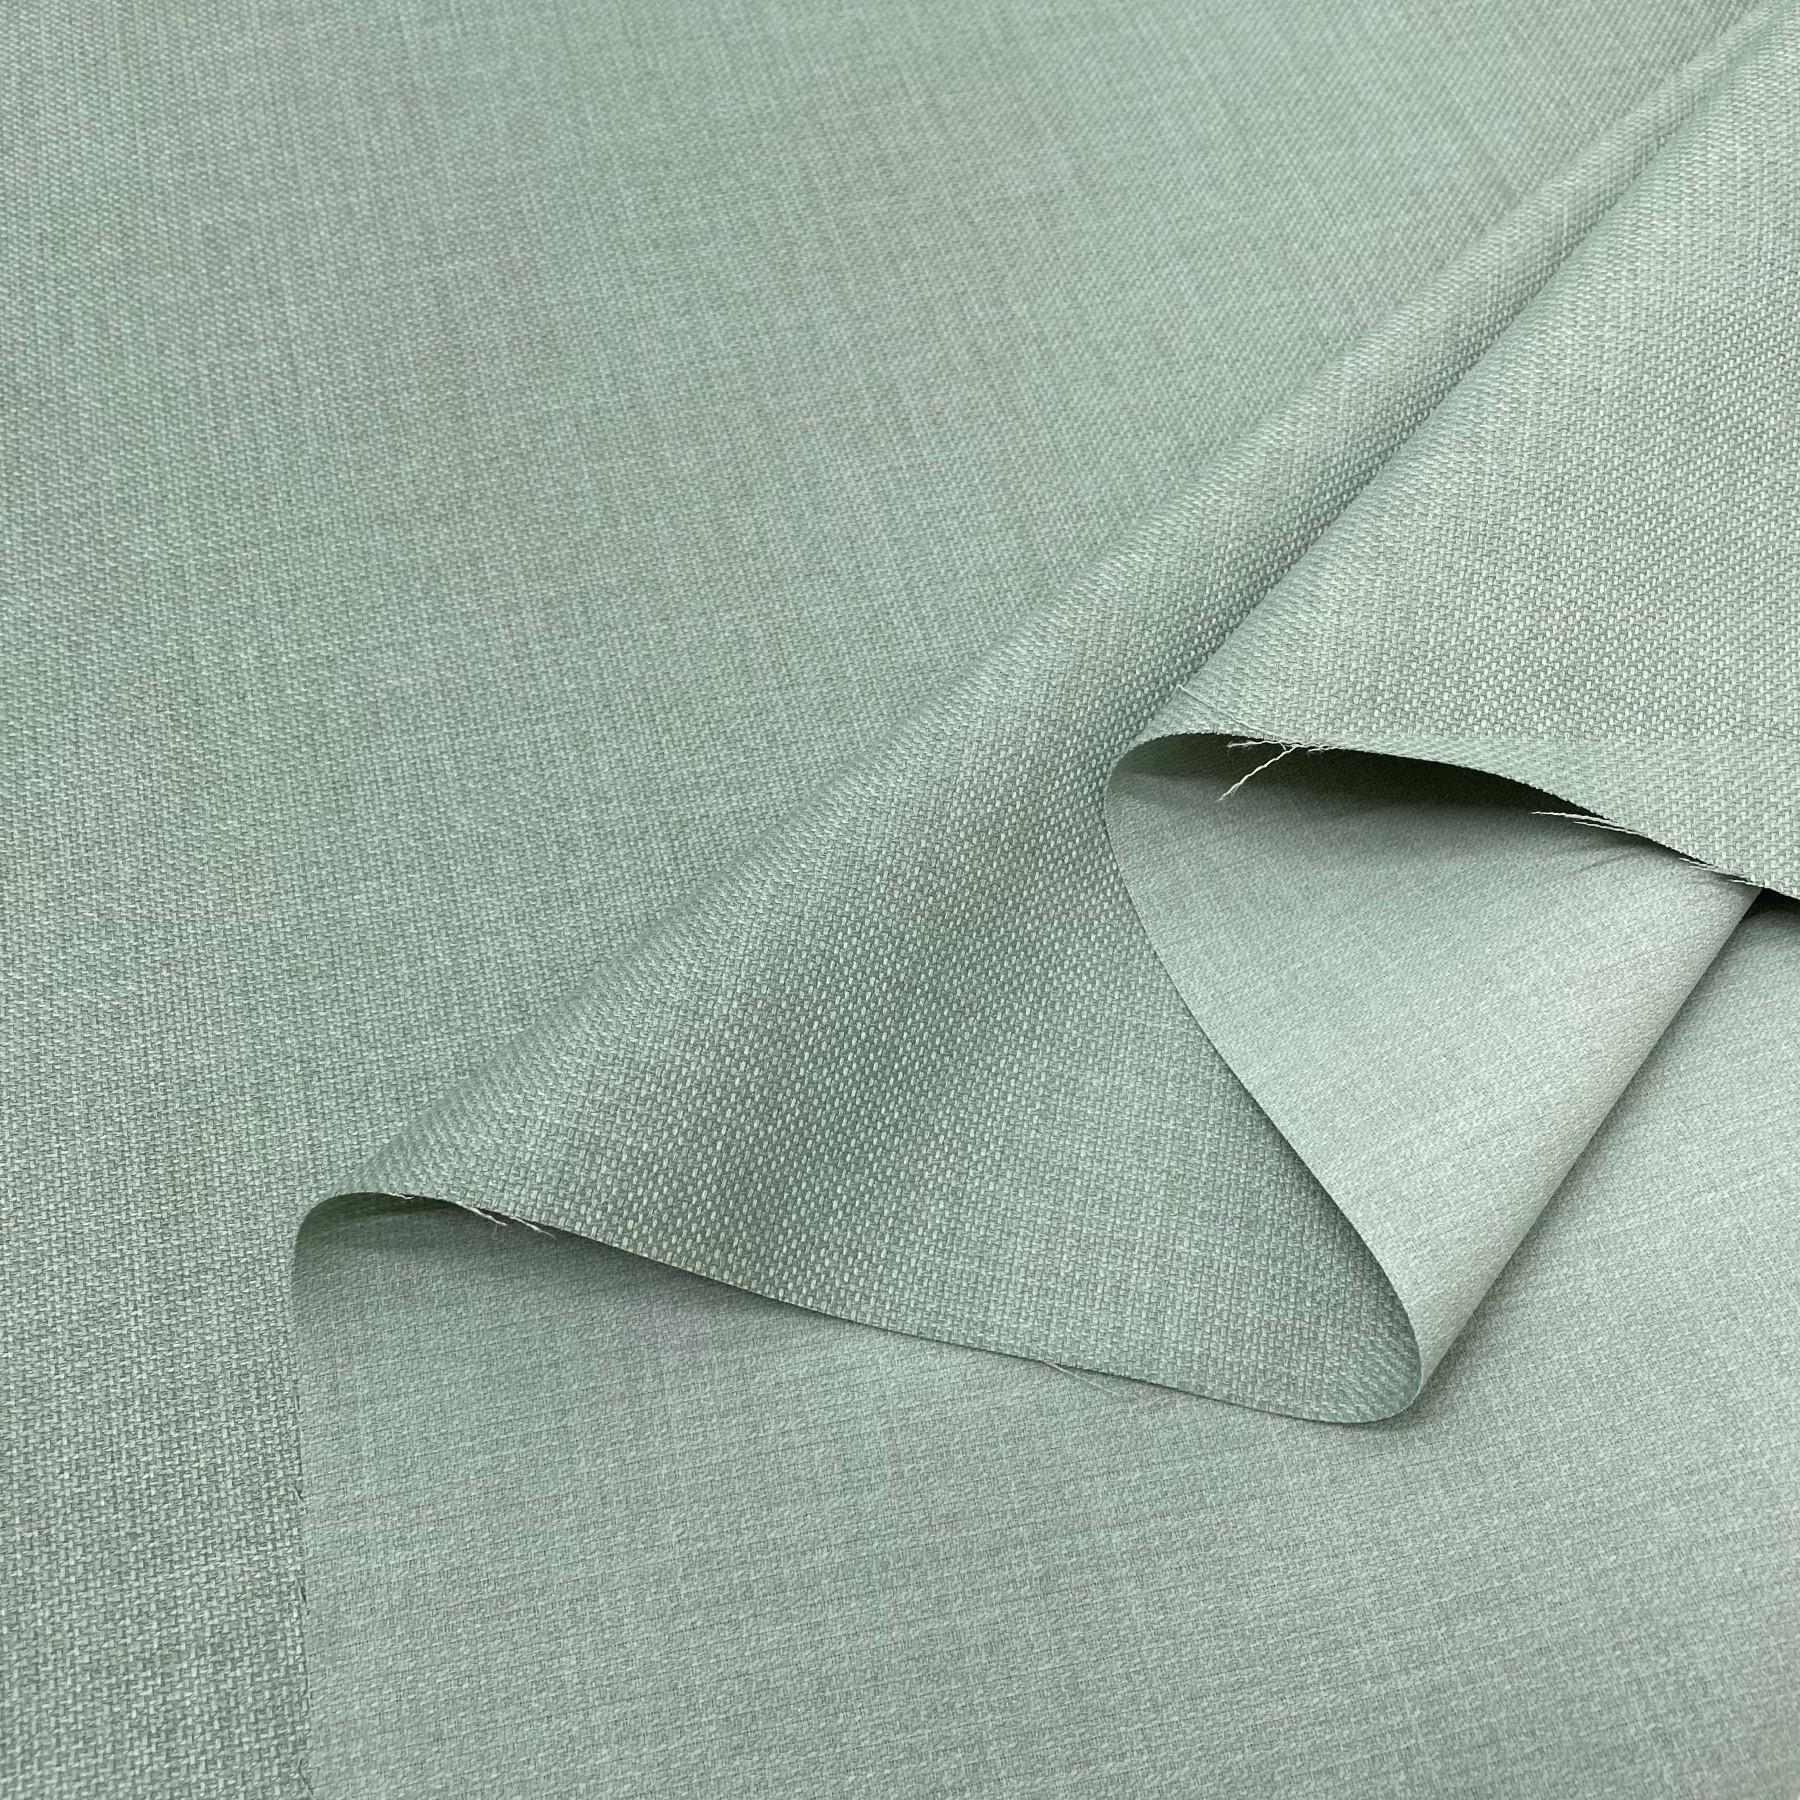 6 Yards Grey Chenille Fire Proof Upholstery Cotton Material Fire Retardant Camper Sofa Fabric